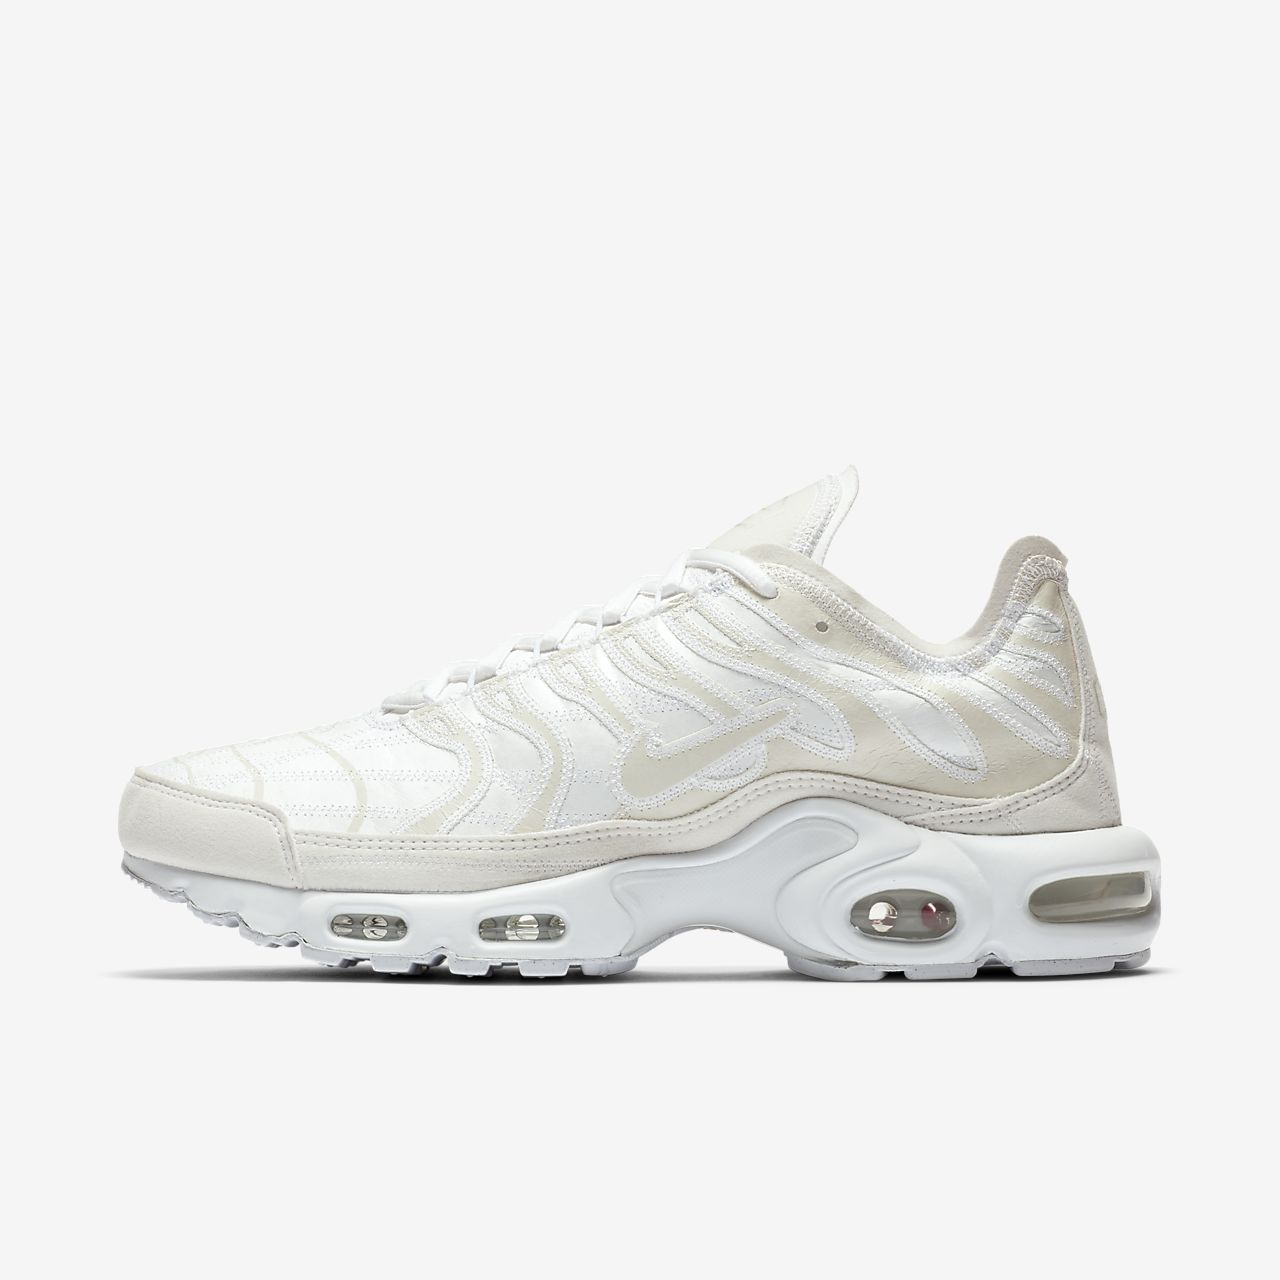 4dcf39ac6d Nike Air Max Plus Deconstructed Men's Shoe